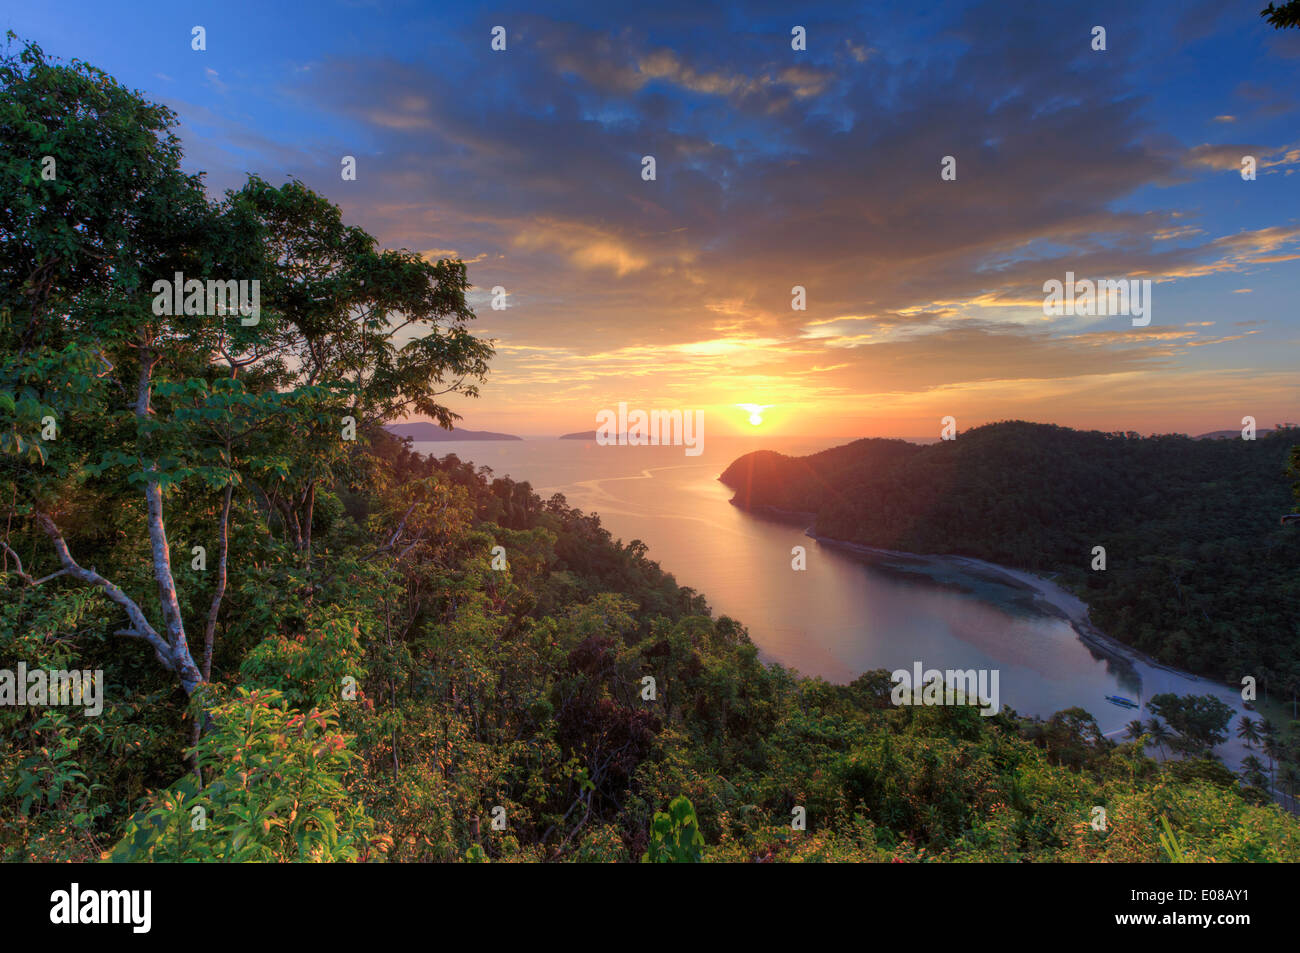 Philippines, Palawan, Port Barton, Turtle Bay - Stock Image